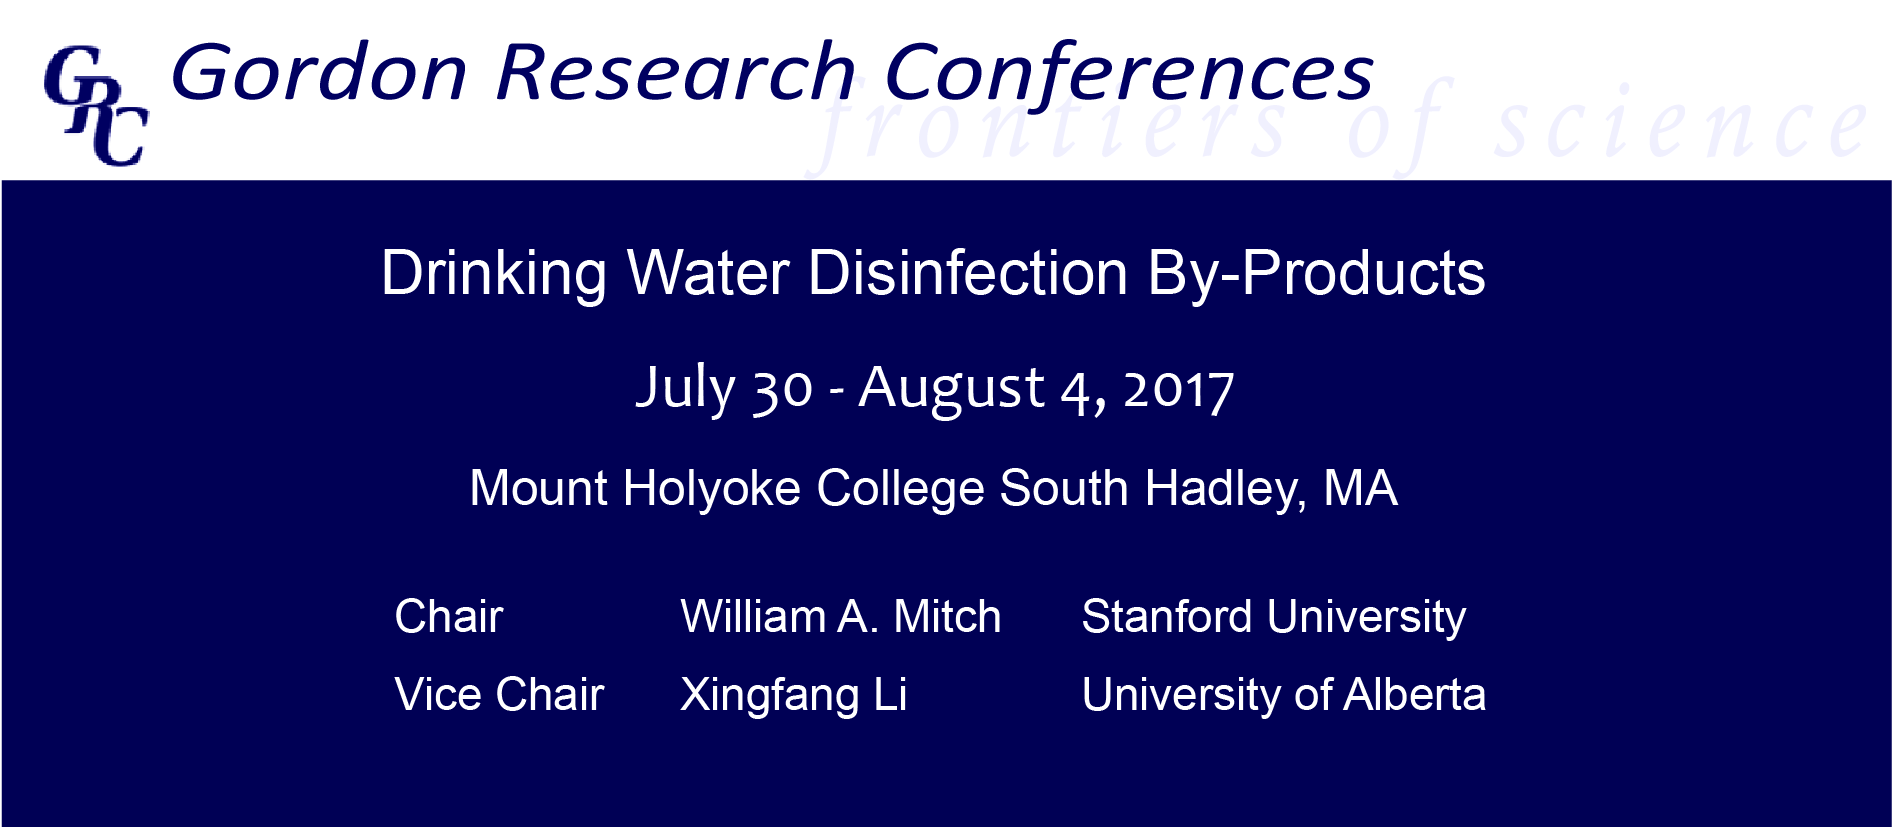 Gordon Research Conference:<br>Drinking Water Disinfection By-Products<br>William A. Mitch, Xingfang Li